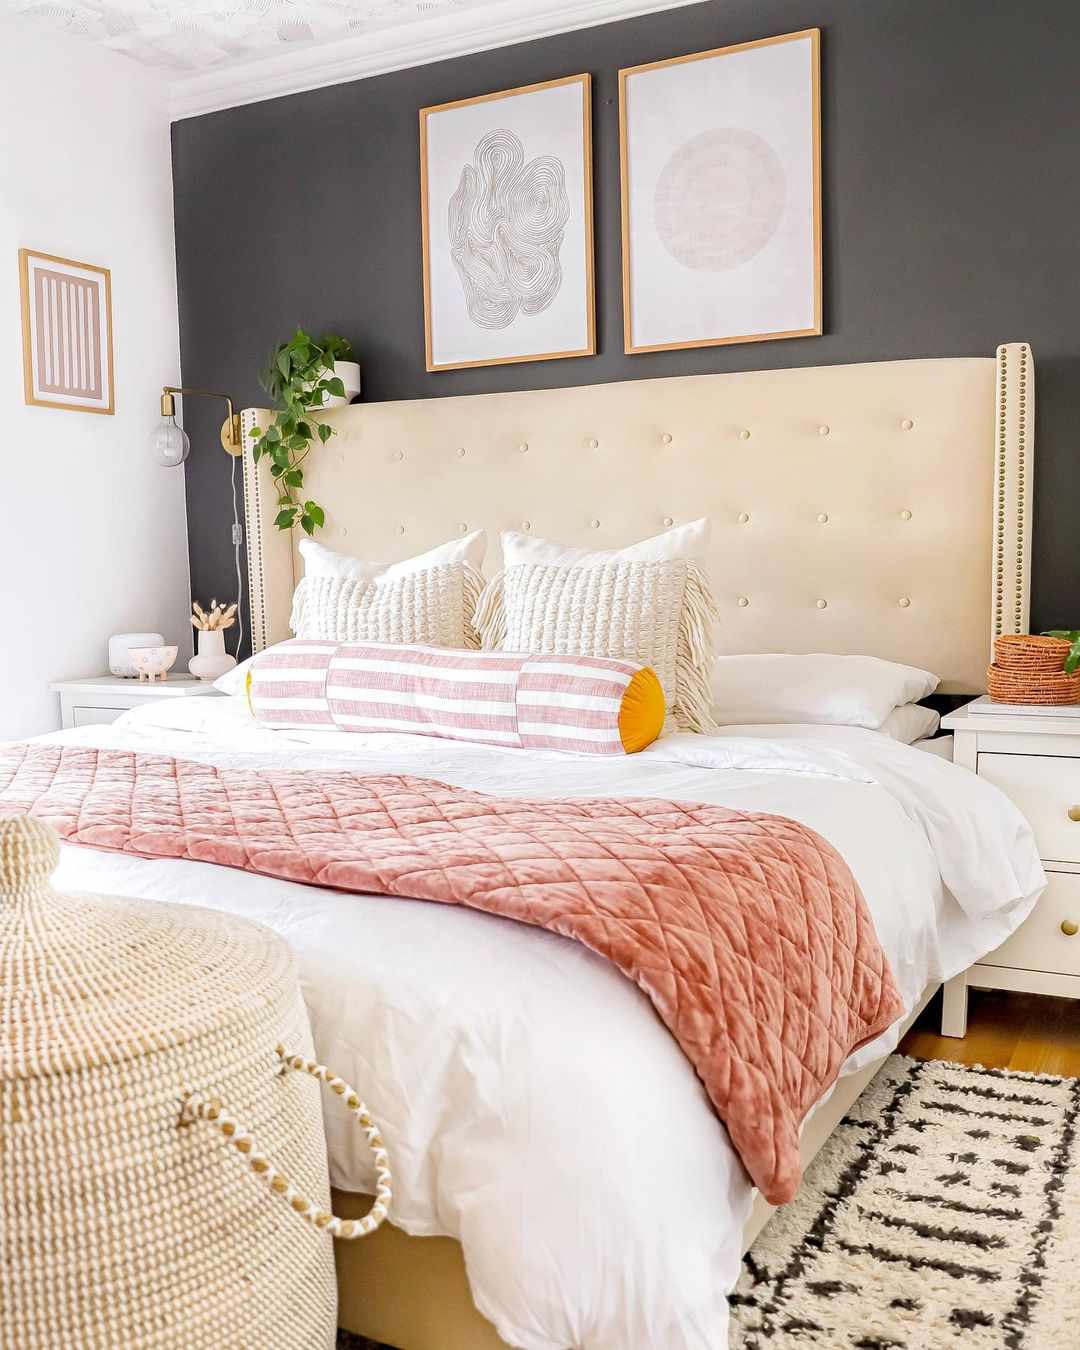 Bed with white bedding and pink quilt.